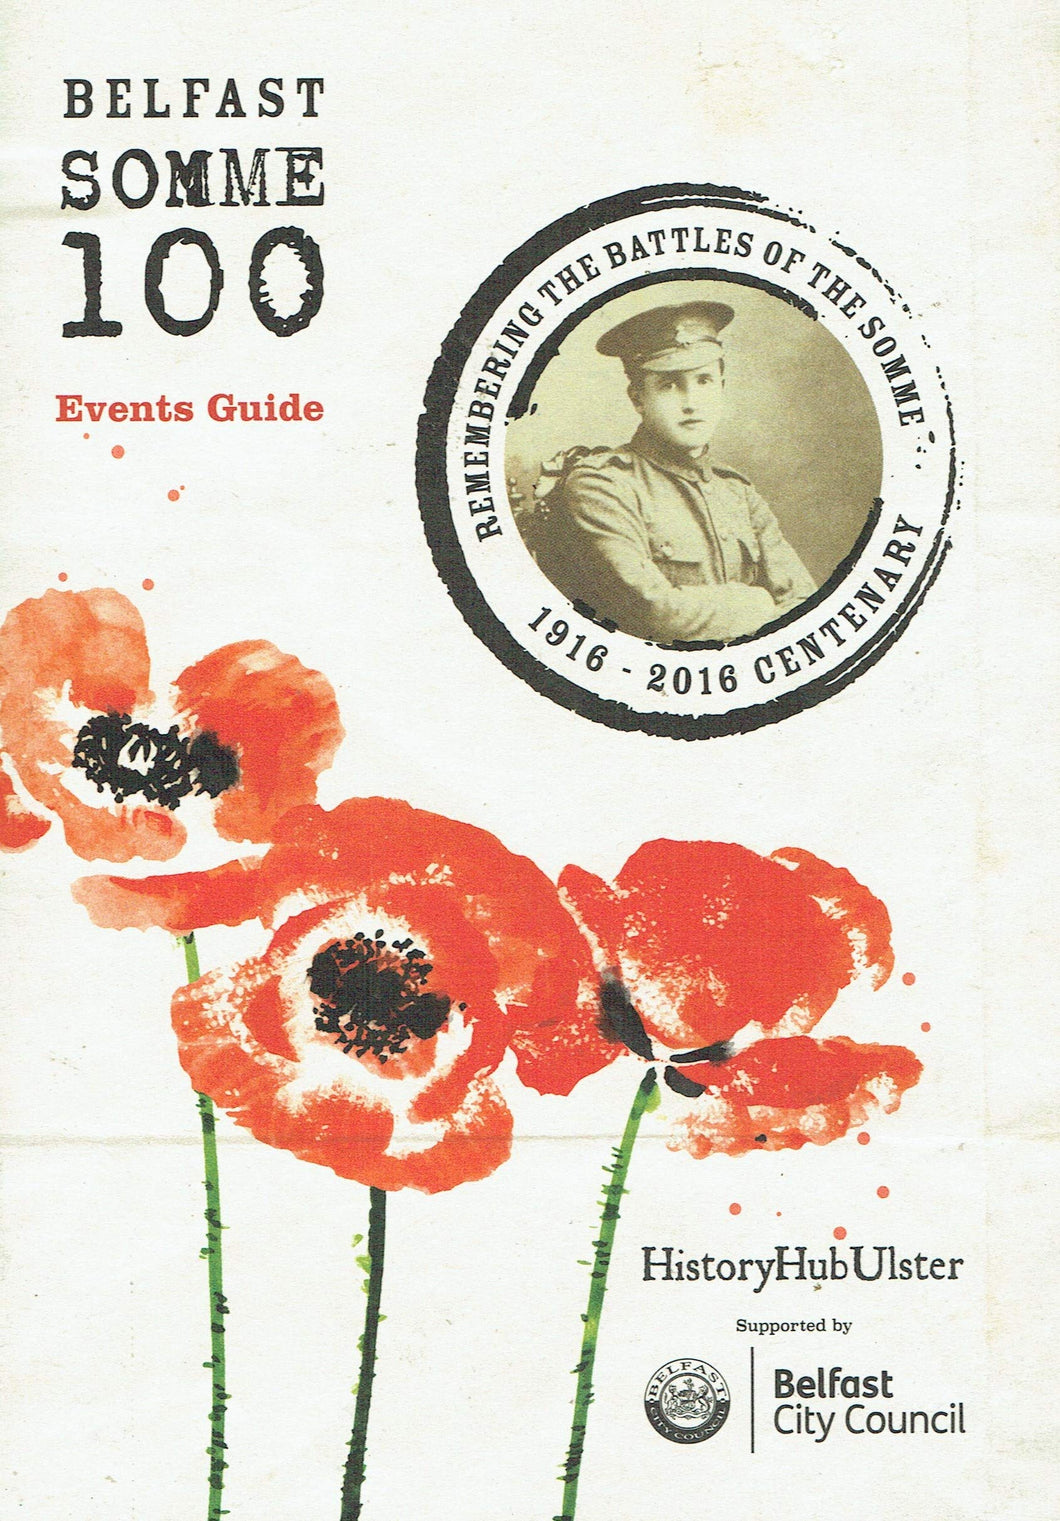 Belfast Somme 100 Events Guide - Remembering the Battles of the Somme 1916 - 2016 Centenary